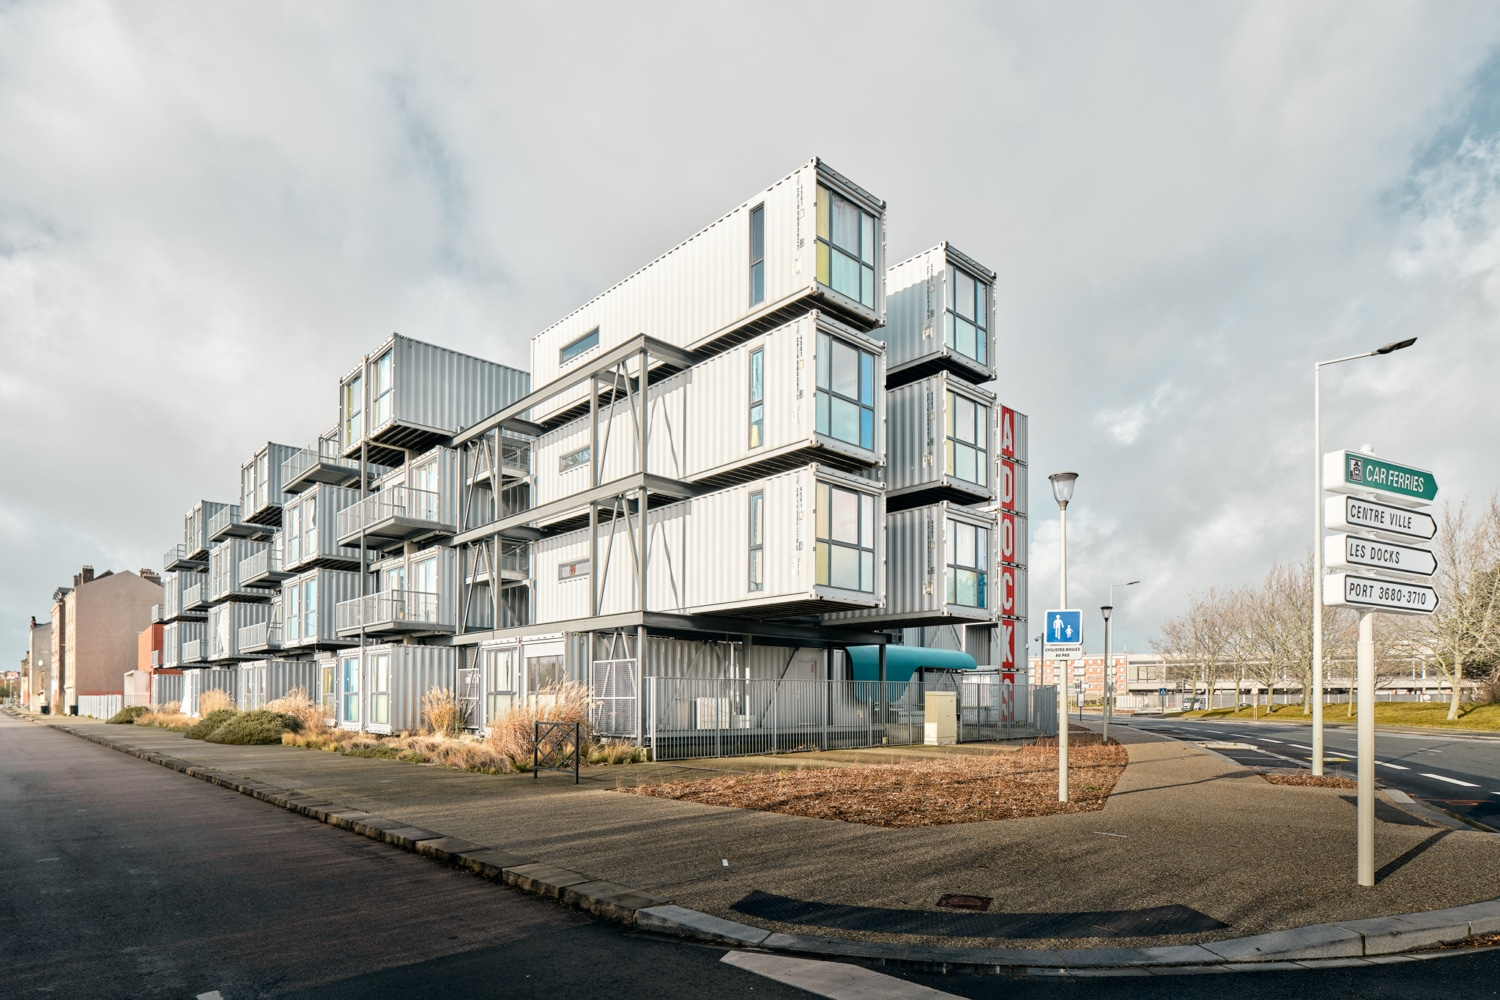 Frankreich - Le Havre - A'Docks / Shipping Container Apartement / Versandcontainerwohnung